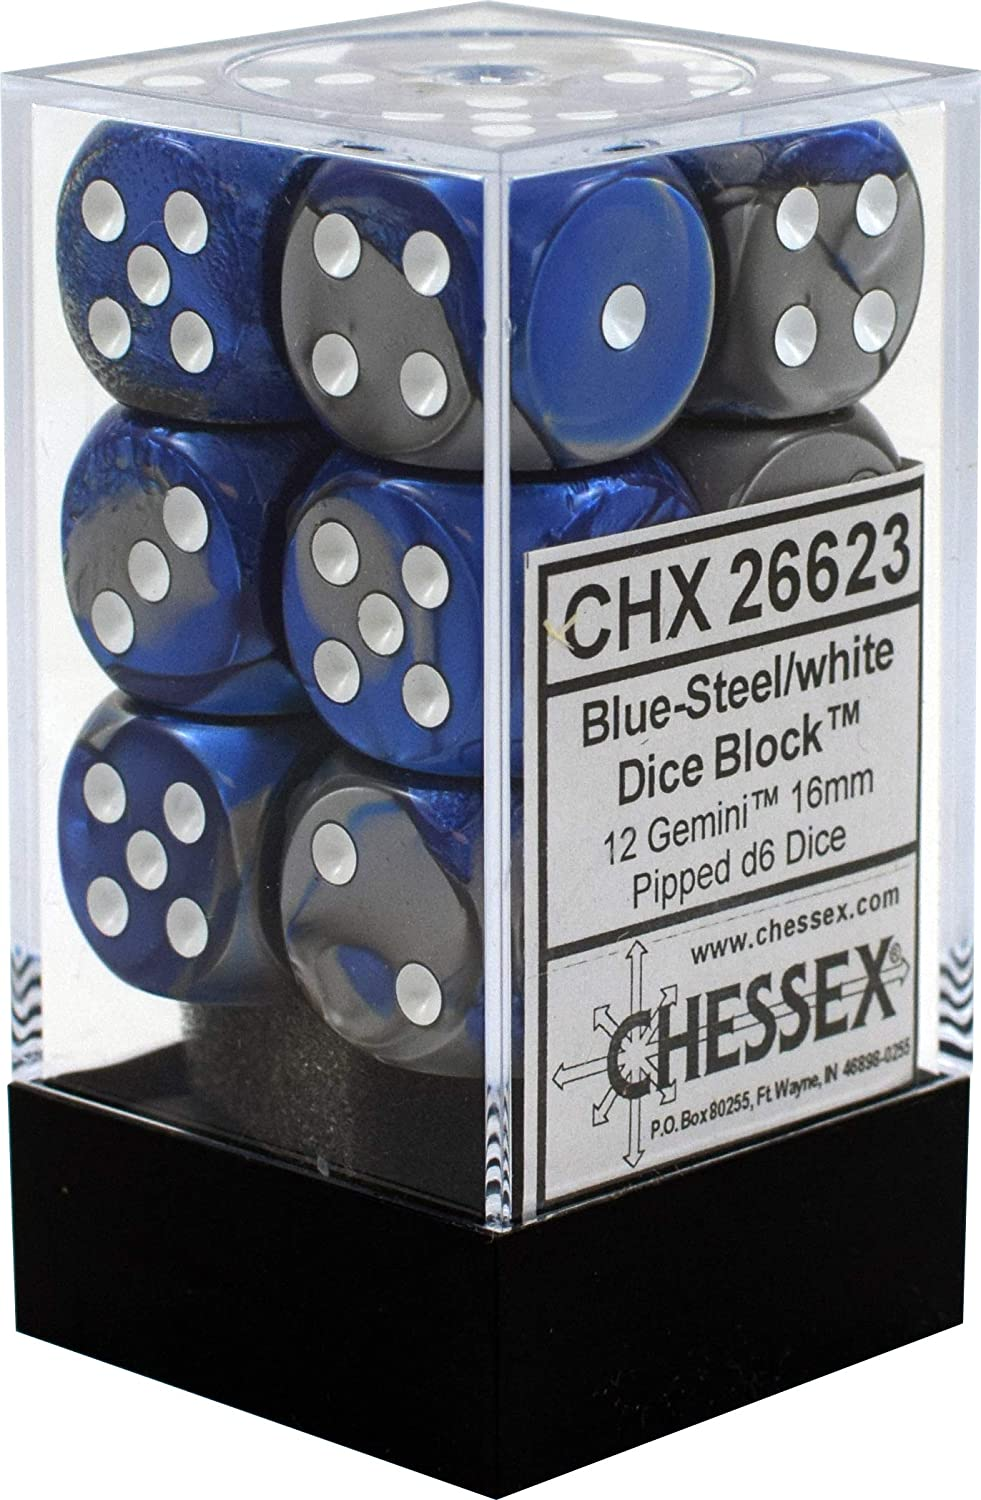 Chessex Dice d6: Gemini Blue Steel Sided free 16mm - Bombing free shipping White Six with